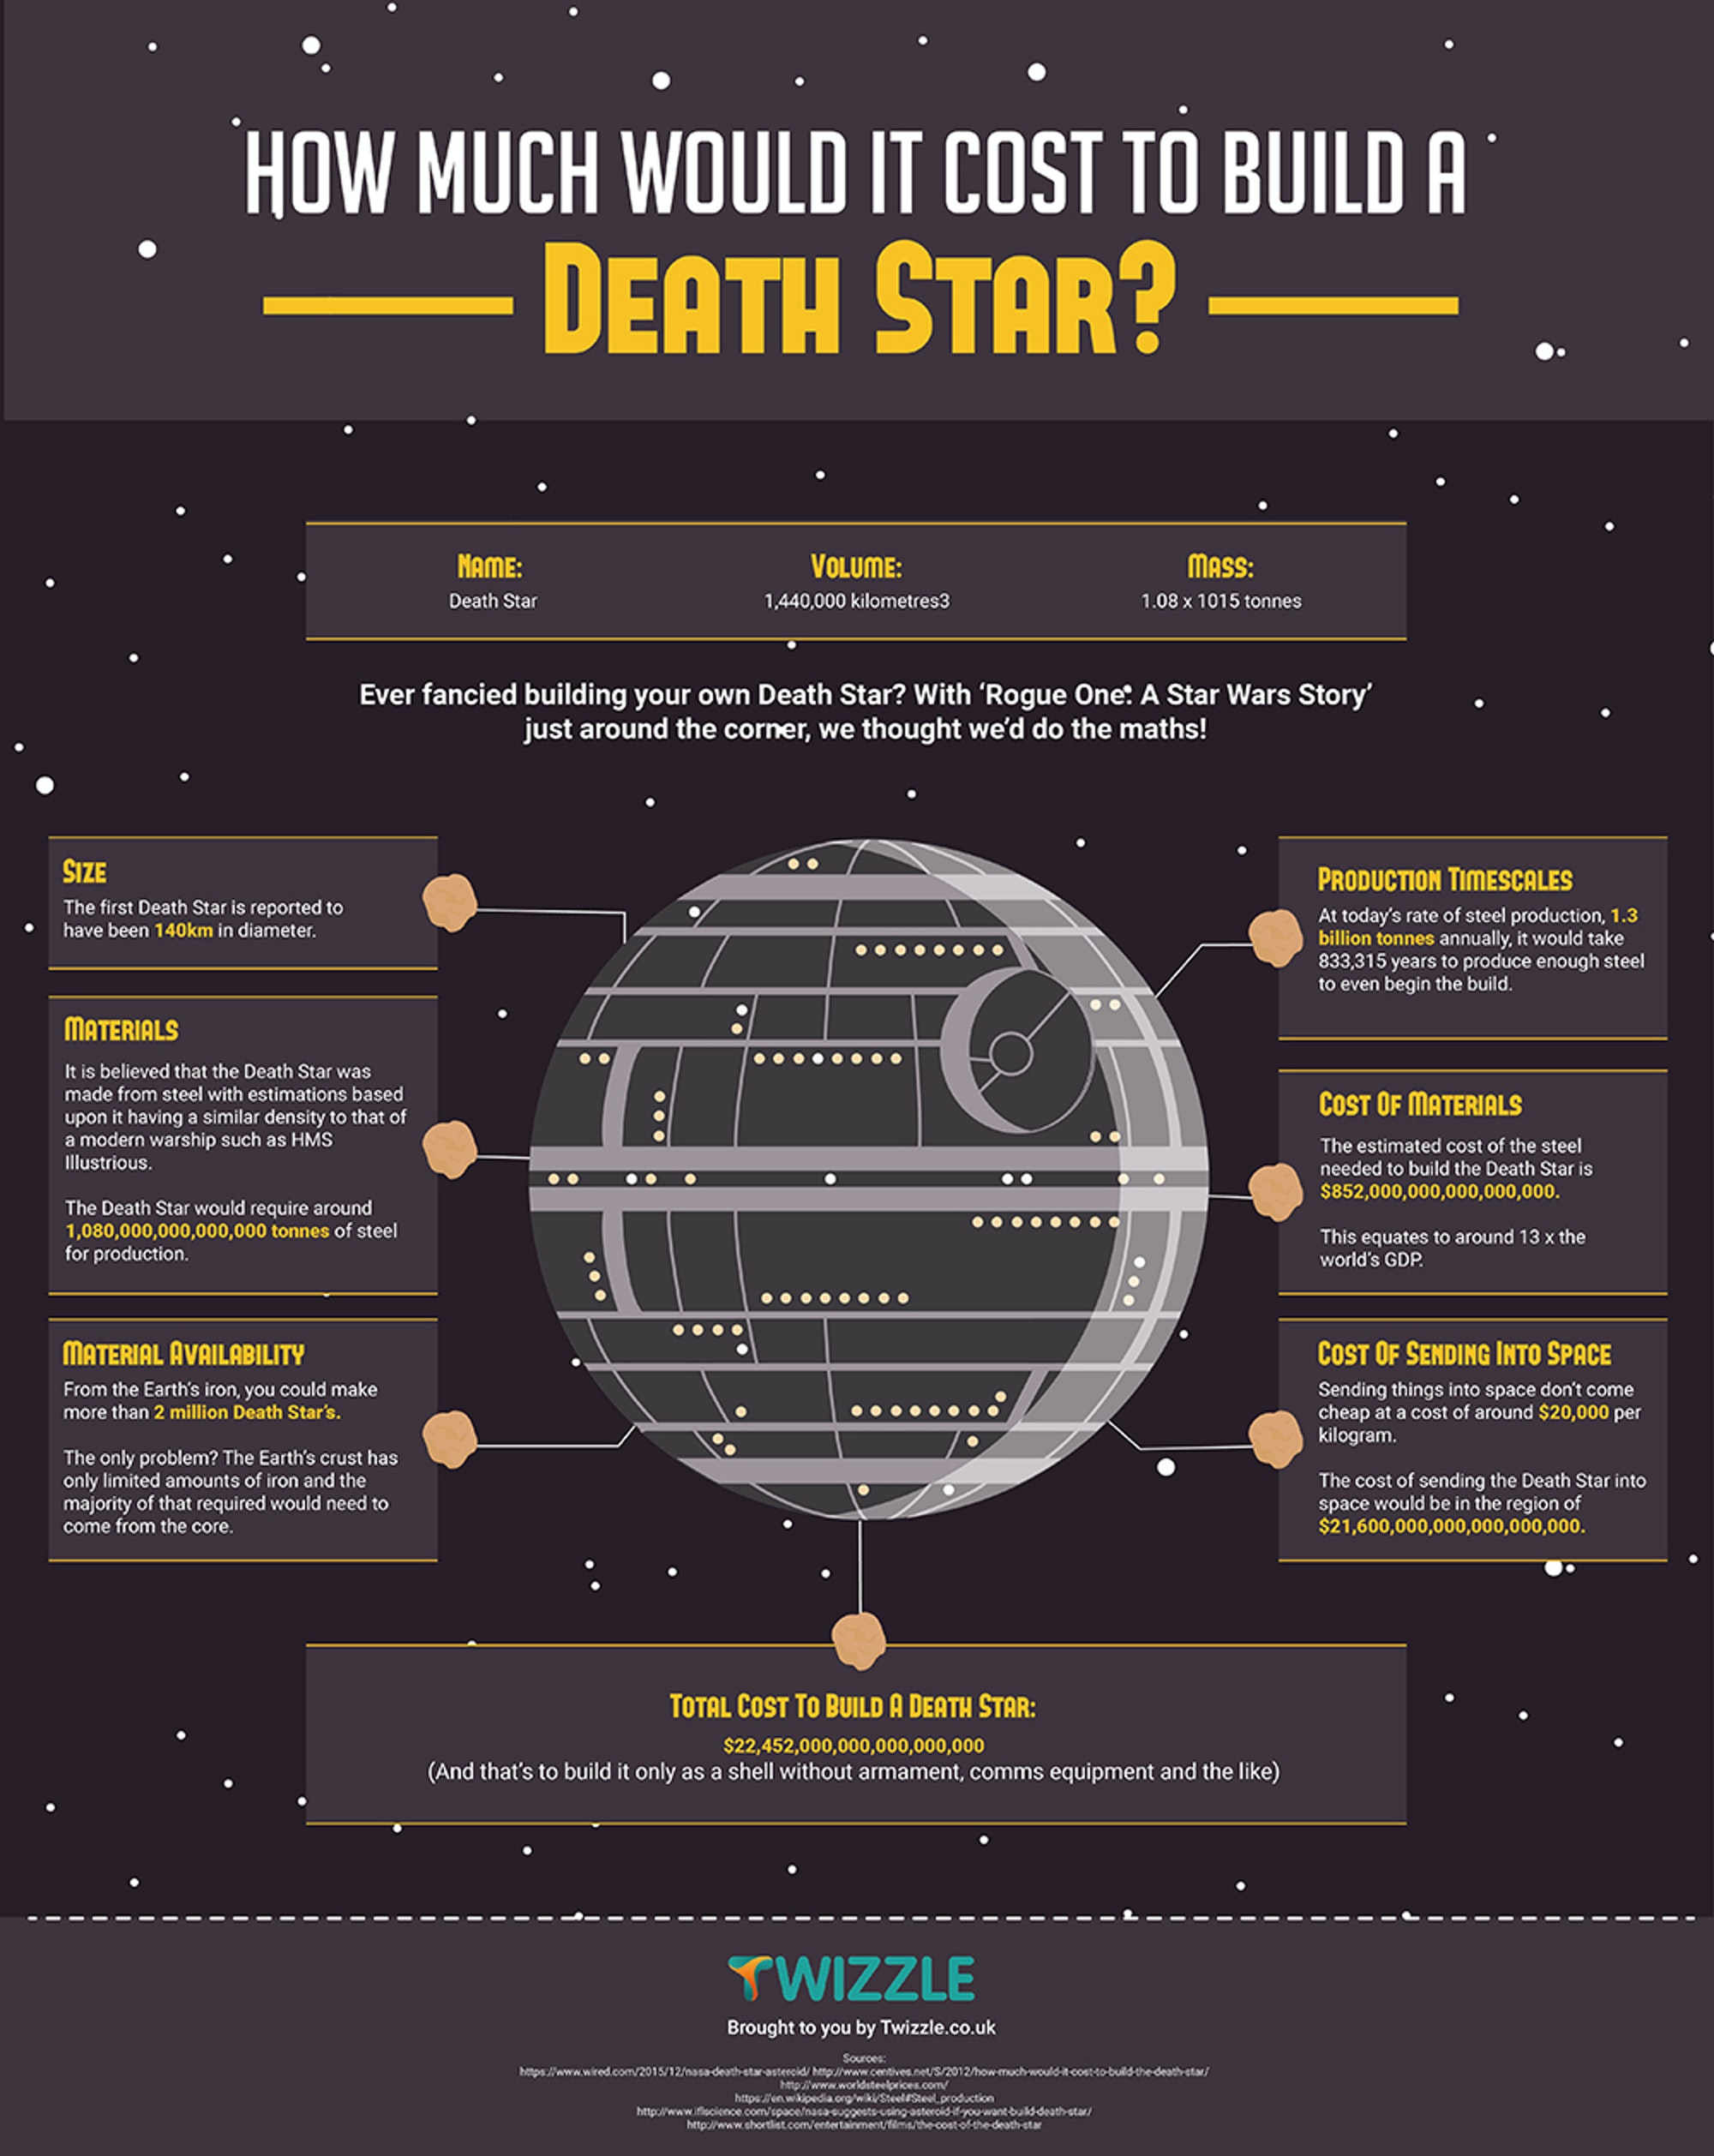 The Death Star is very very expensive.